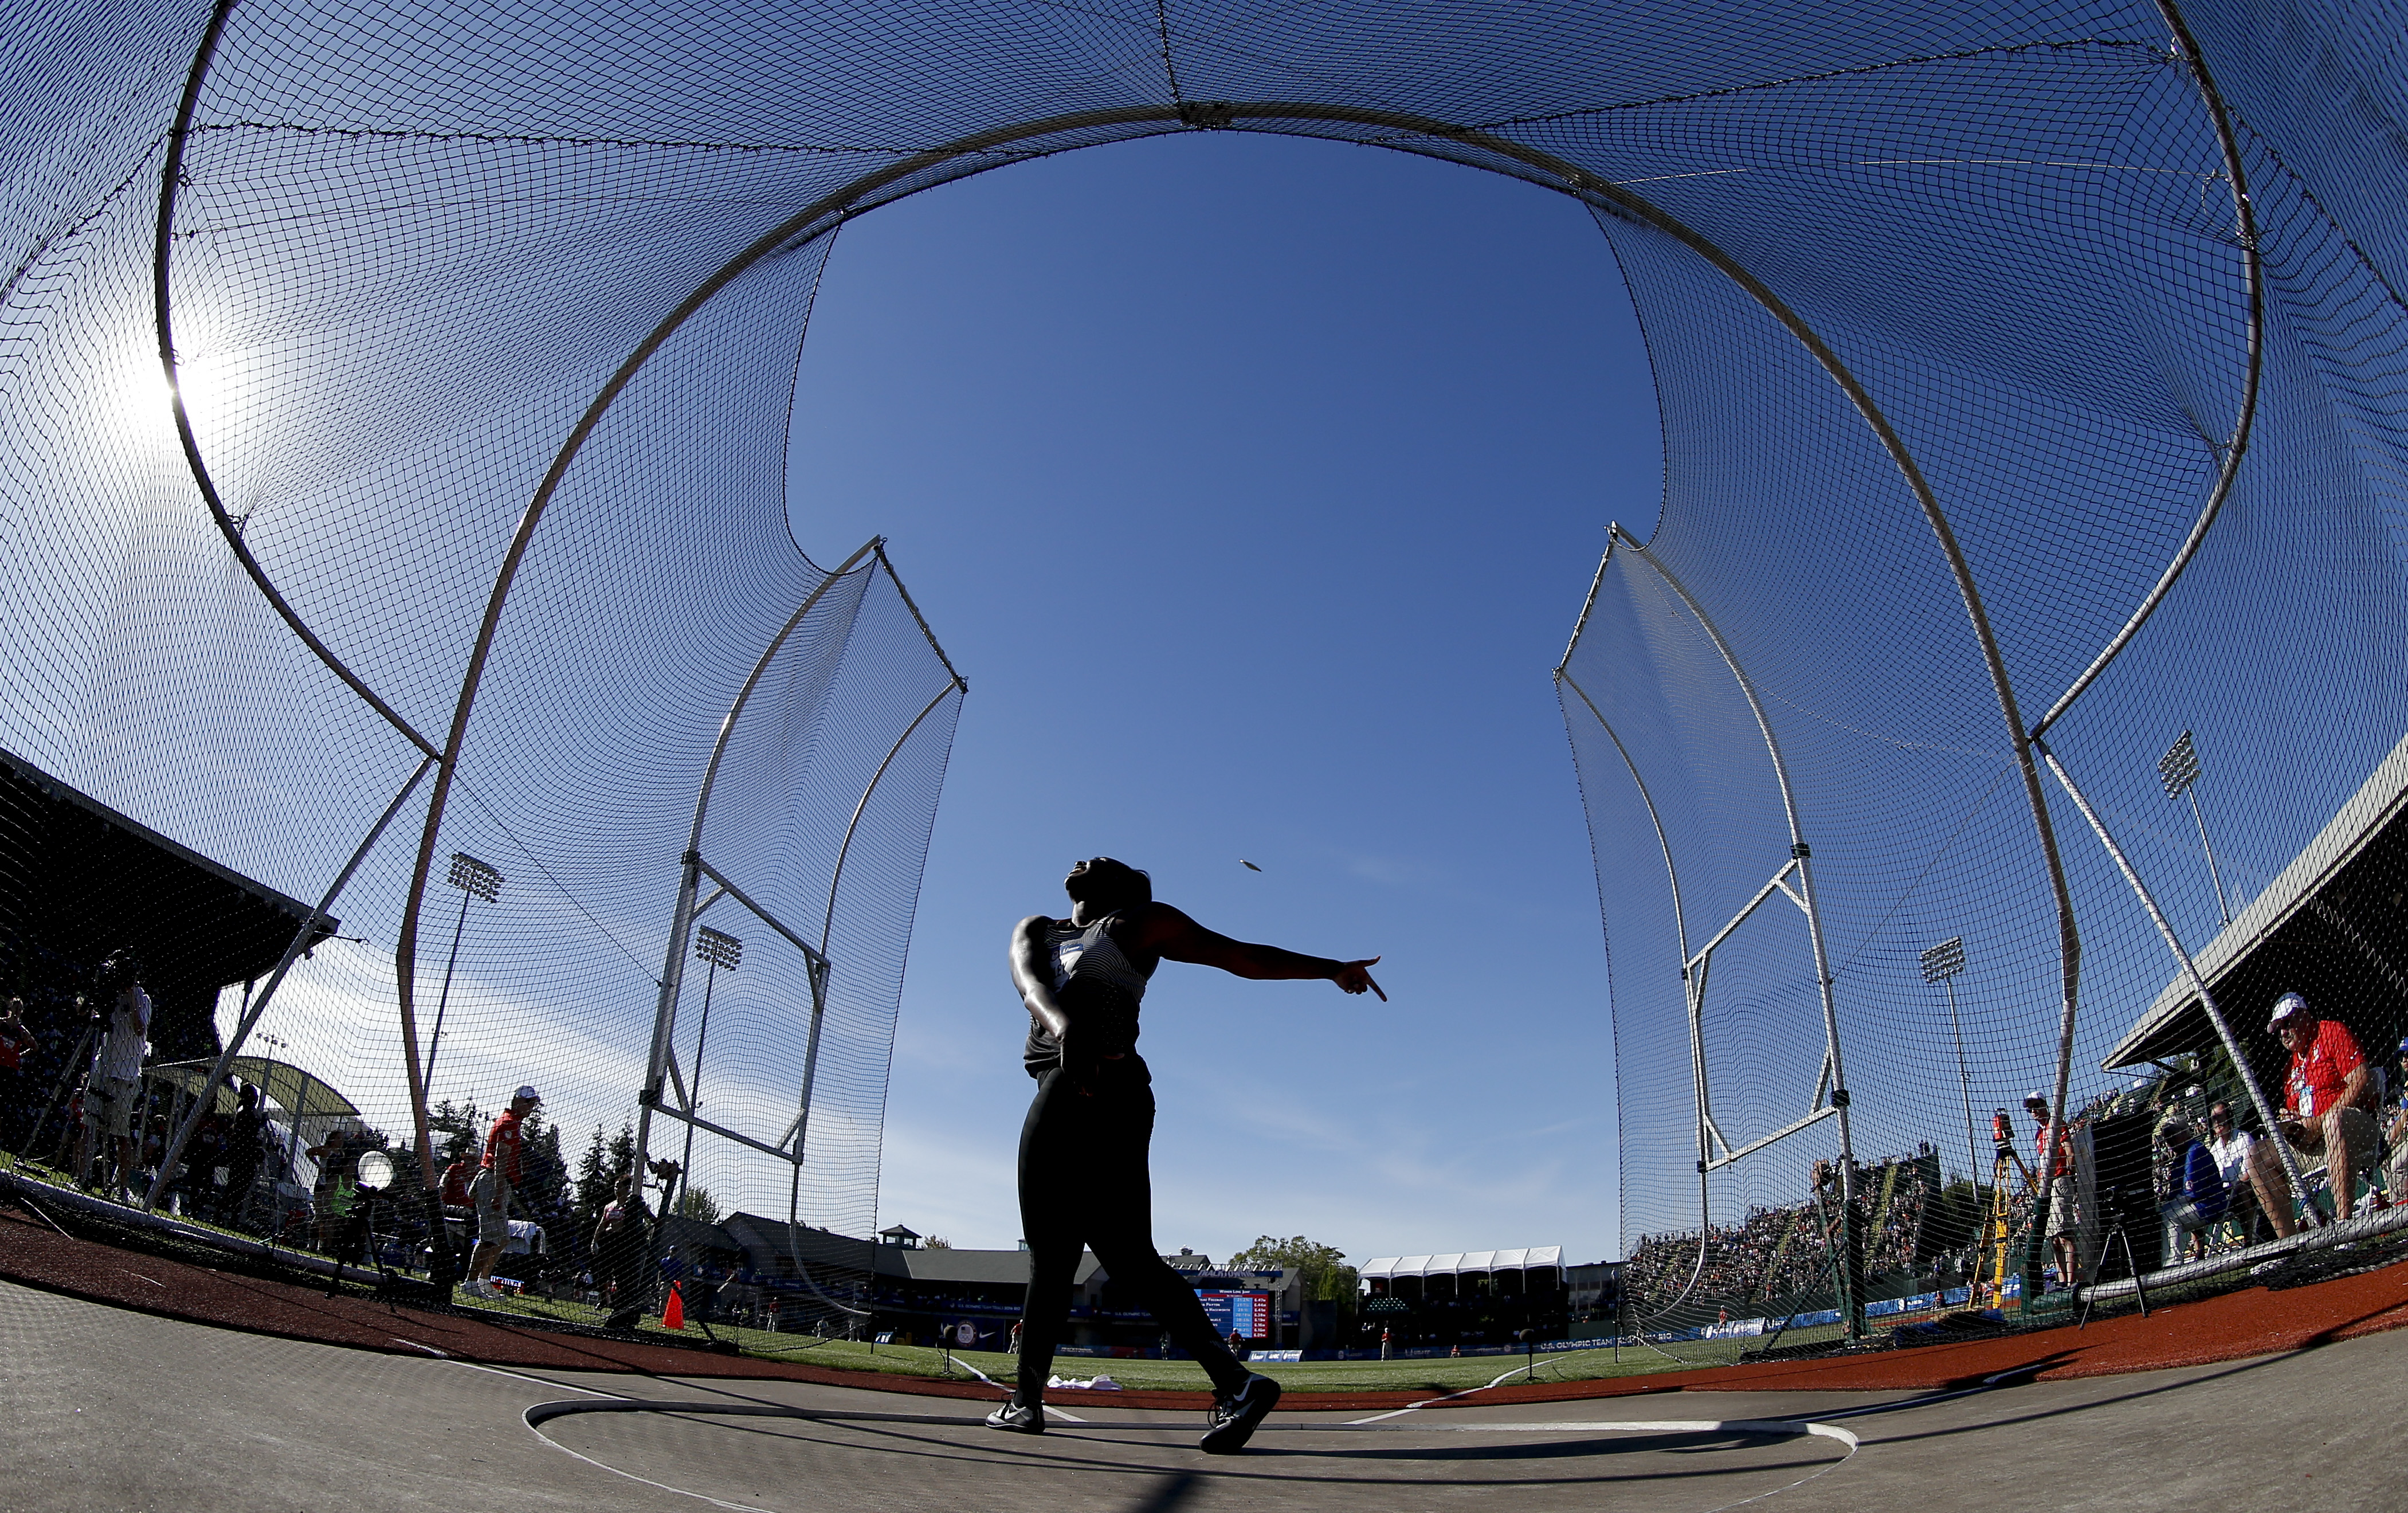 Whitney Ashley competes during qualifying for the womens discus throw at the U.S. Olympic Track and Field Trials, Friday, July 1, 2016, in Eugene Ore. (AP Photo/Matt Slocum)